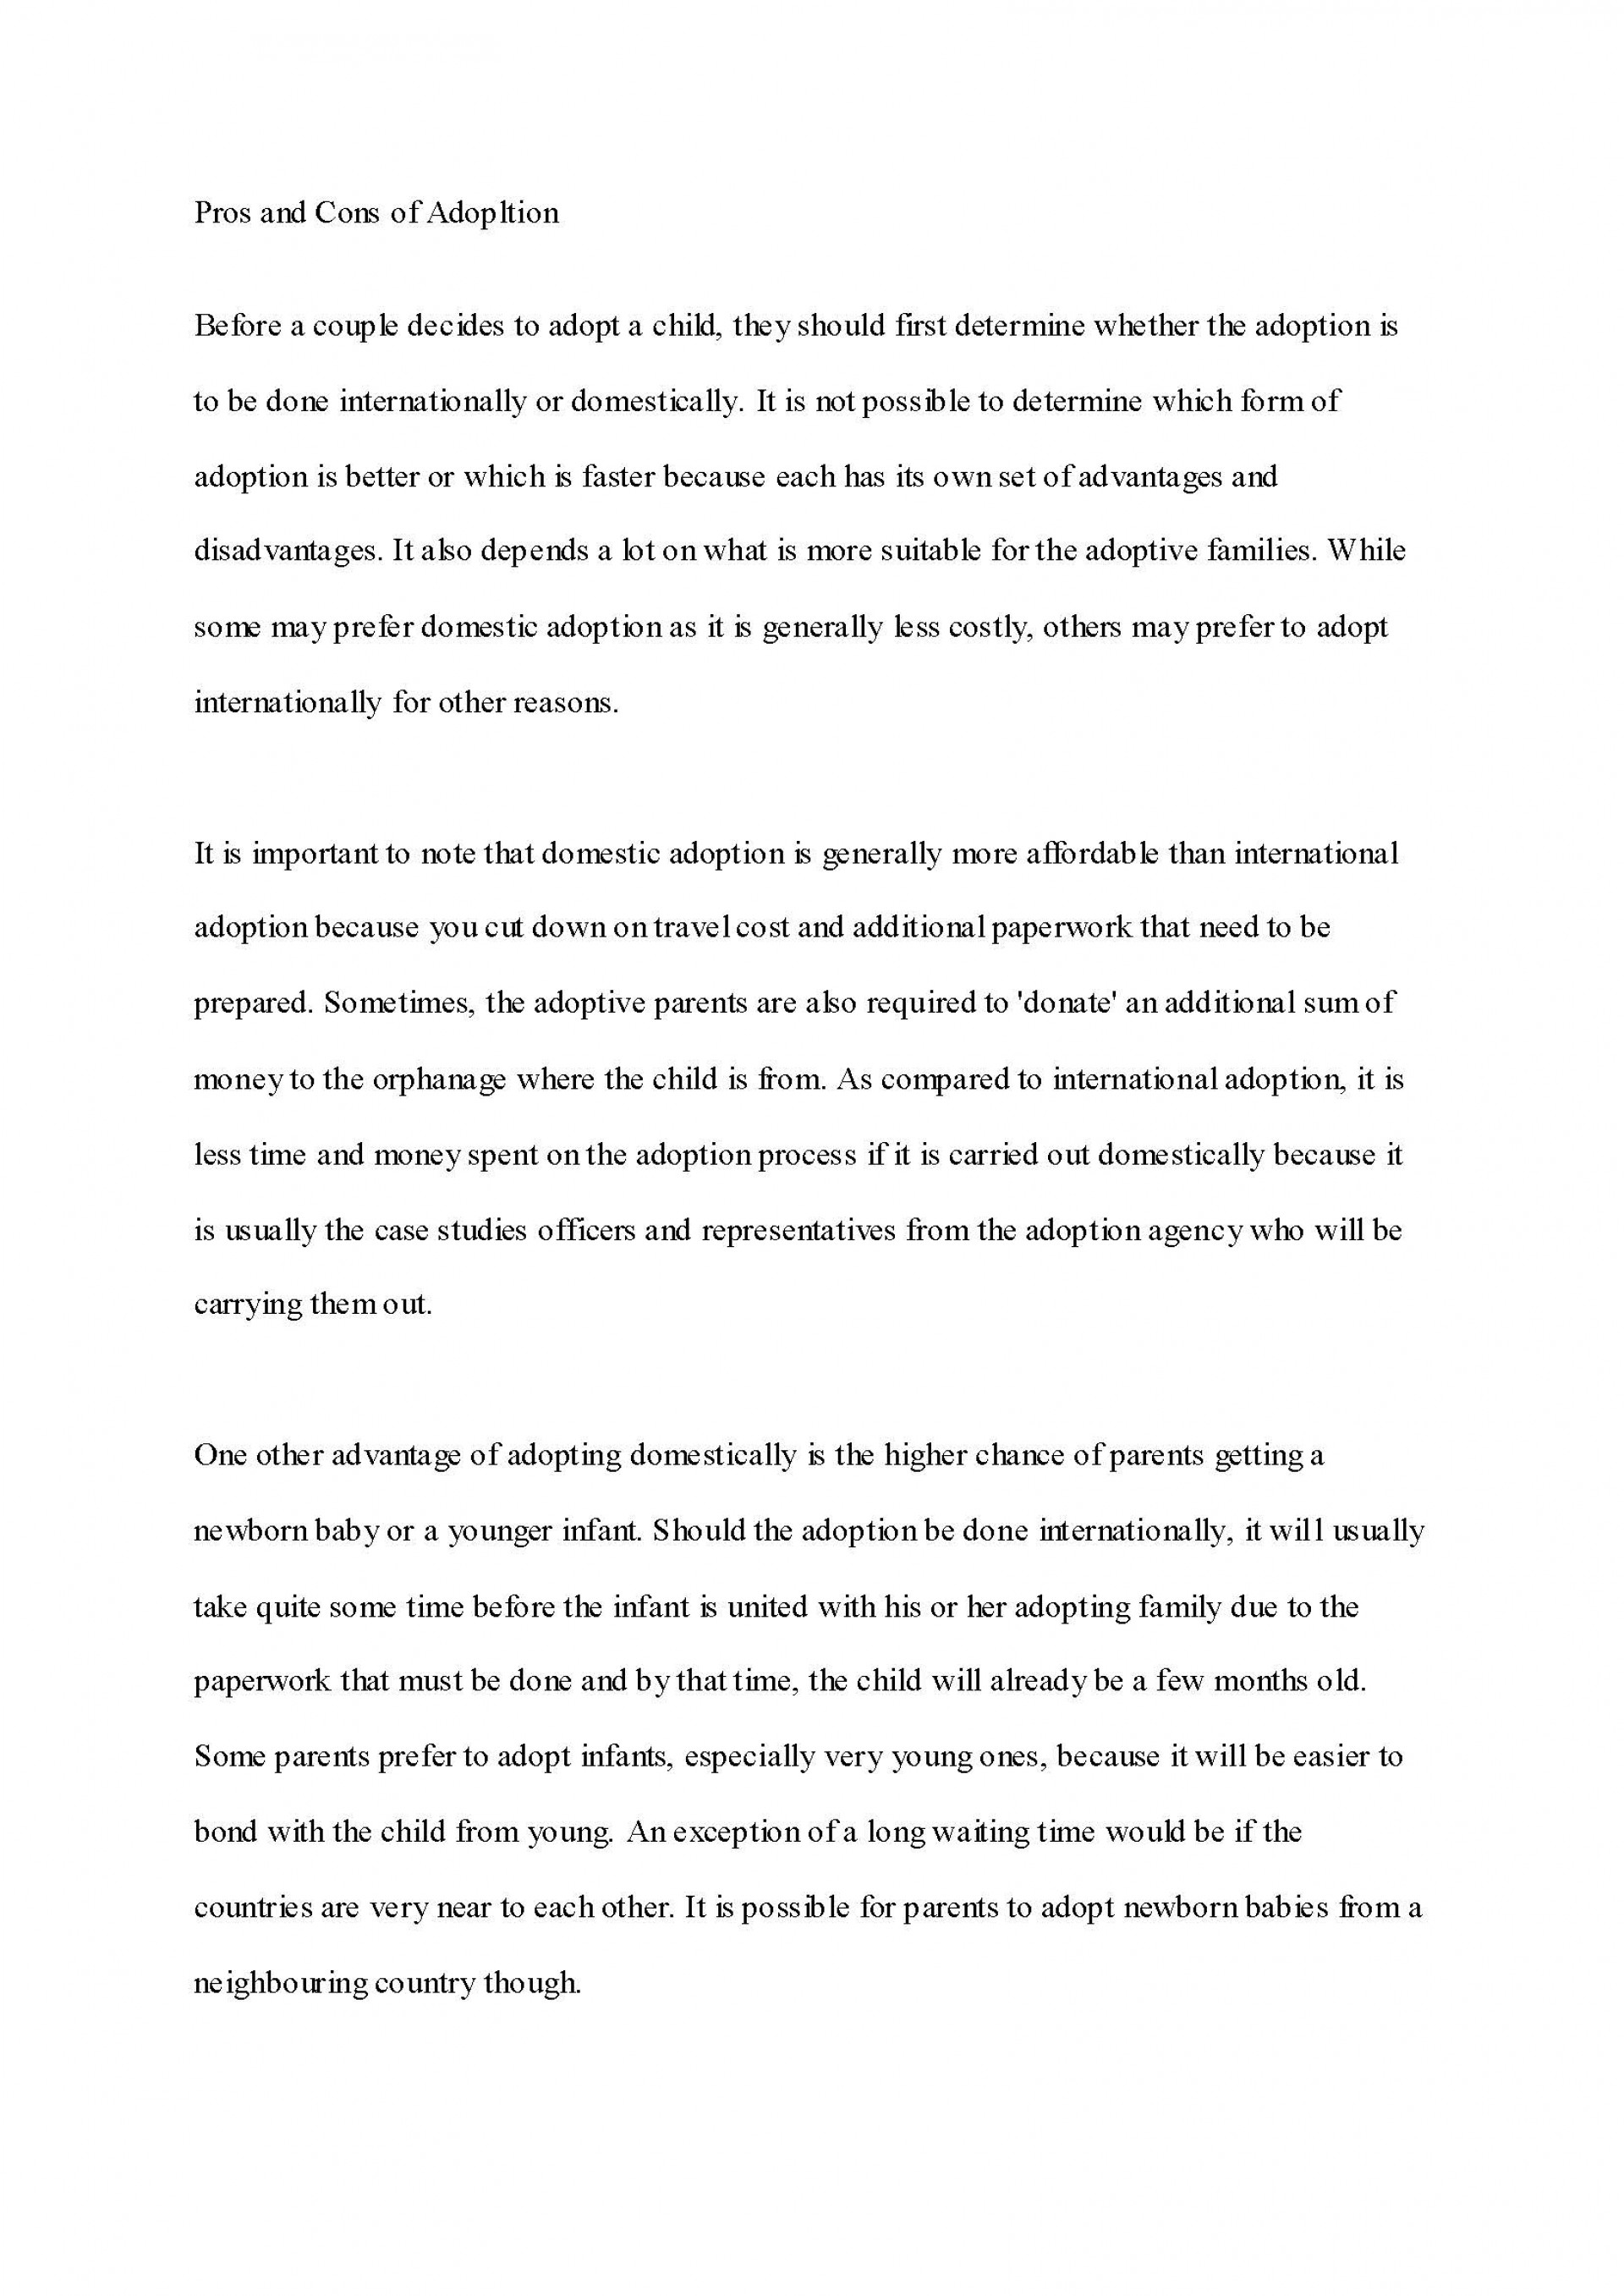 020 Adoption Essay Sample Persuasive Samples Awesome Short Examples About Bullying College Athletes Should Get Paid For Elementary Students 1920